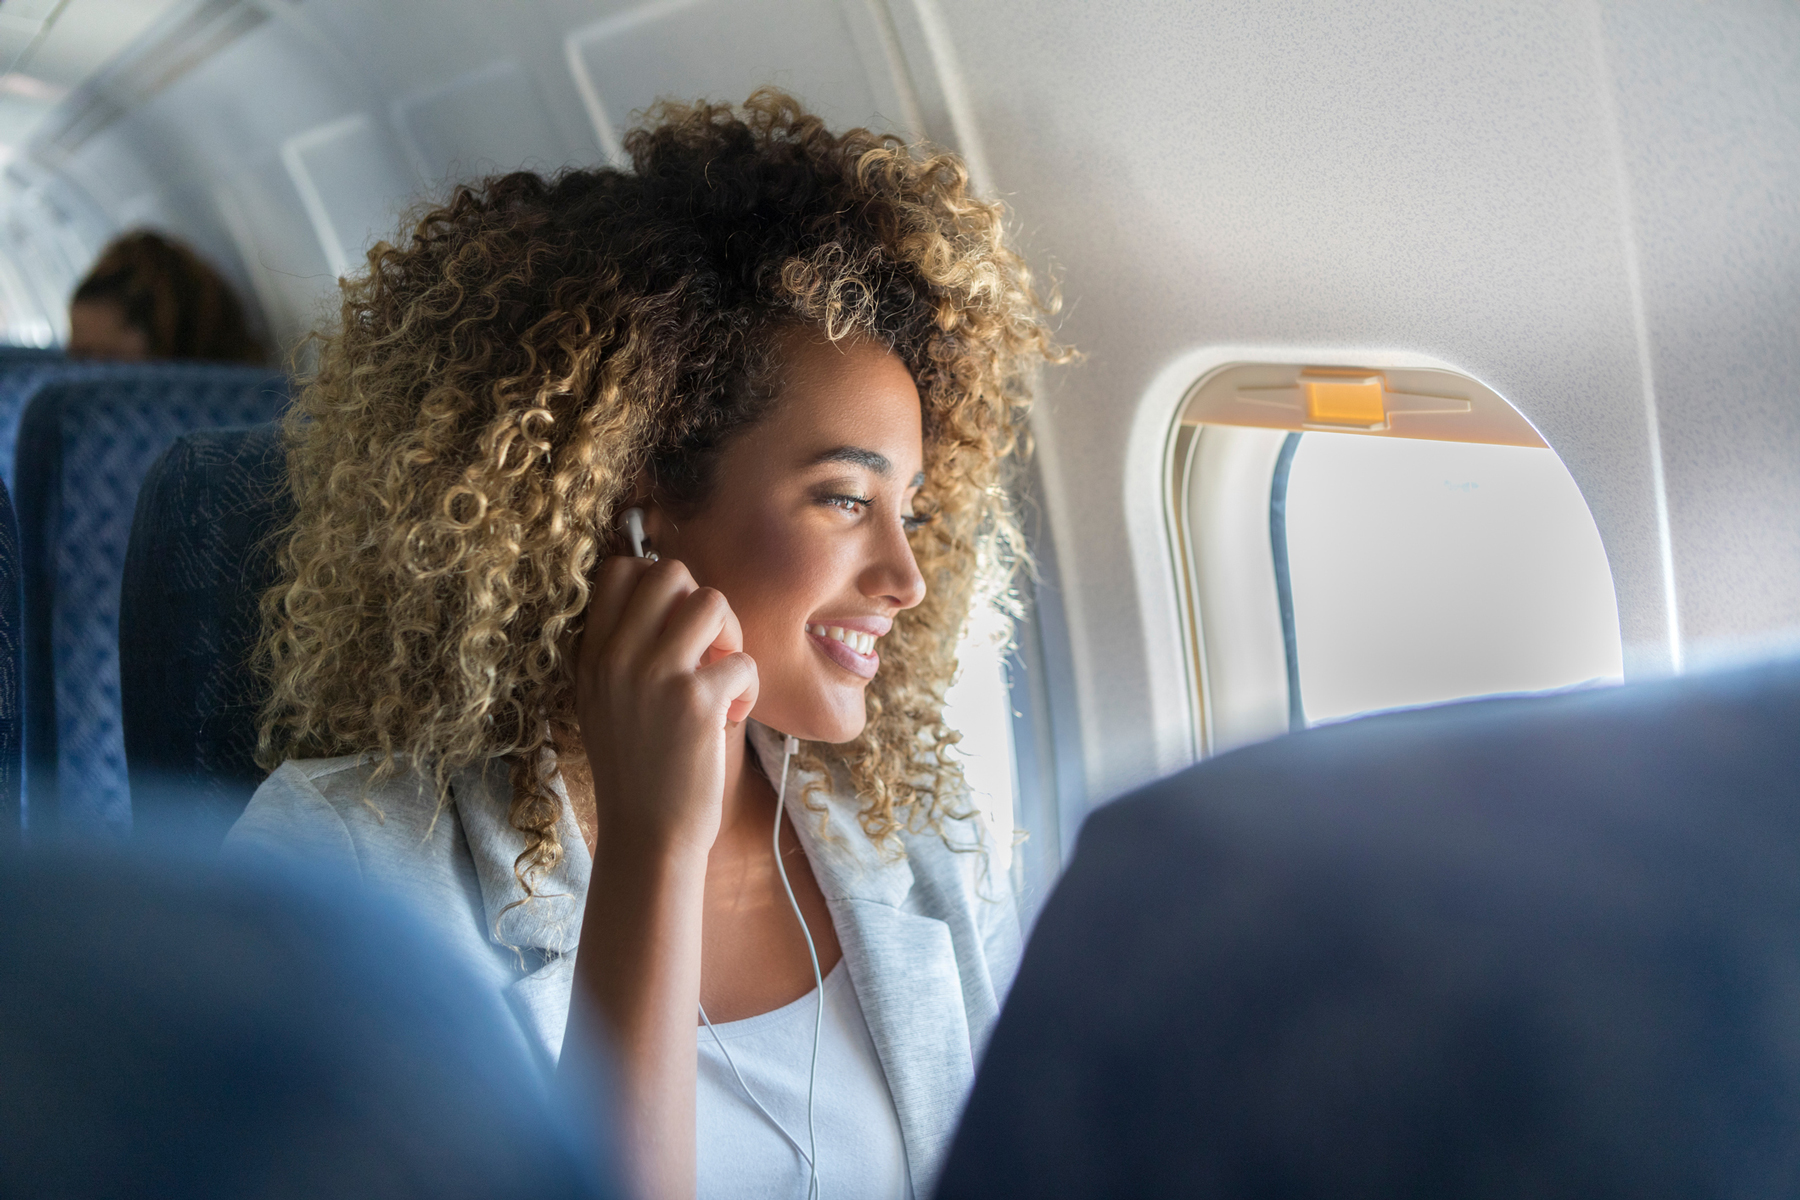 A young woman look out a plane window smiles